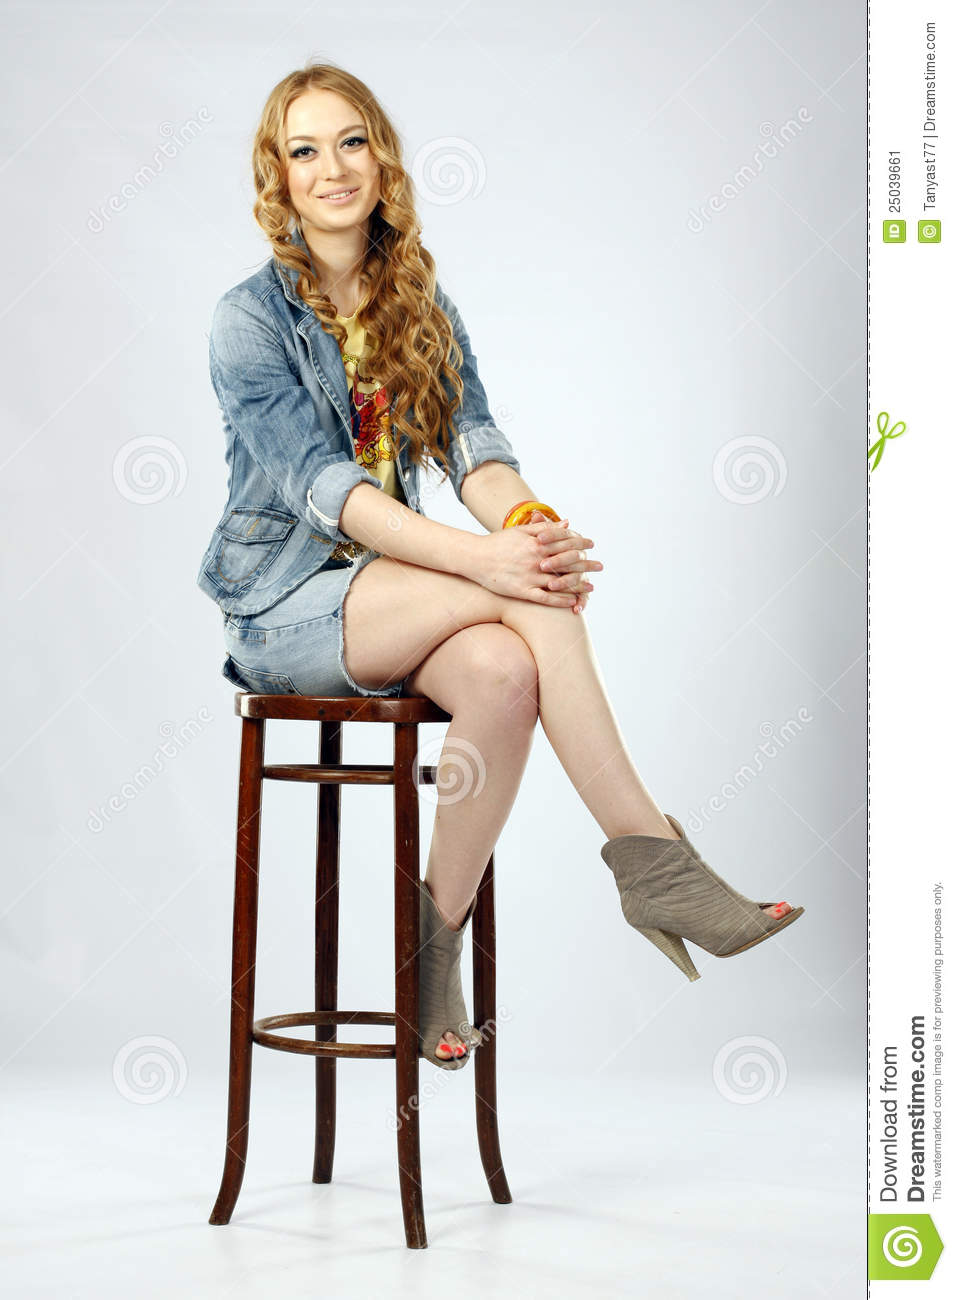 Young Beautiful Woman Sitting On A Stool Stock Image  : young beautiful woman sitting stool 25039661 from www.dreamstime.com size 957 x 1300 jpeg 98kB